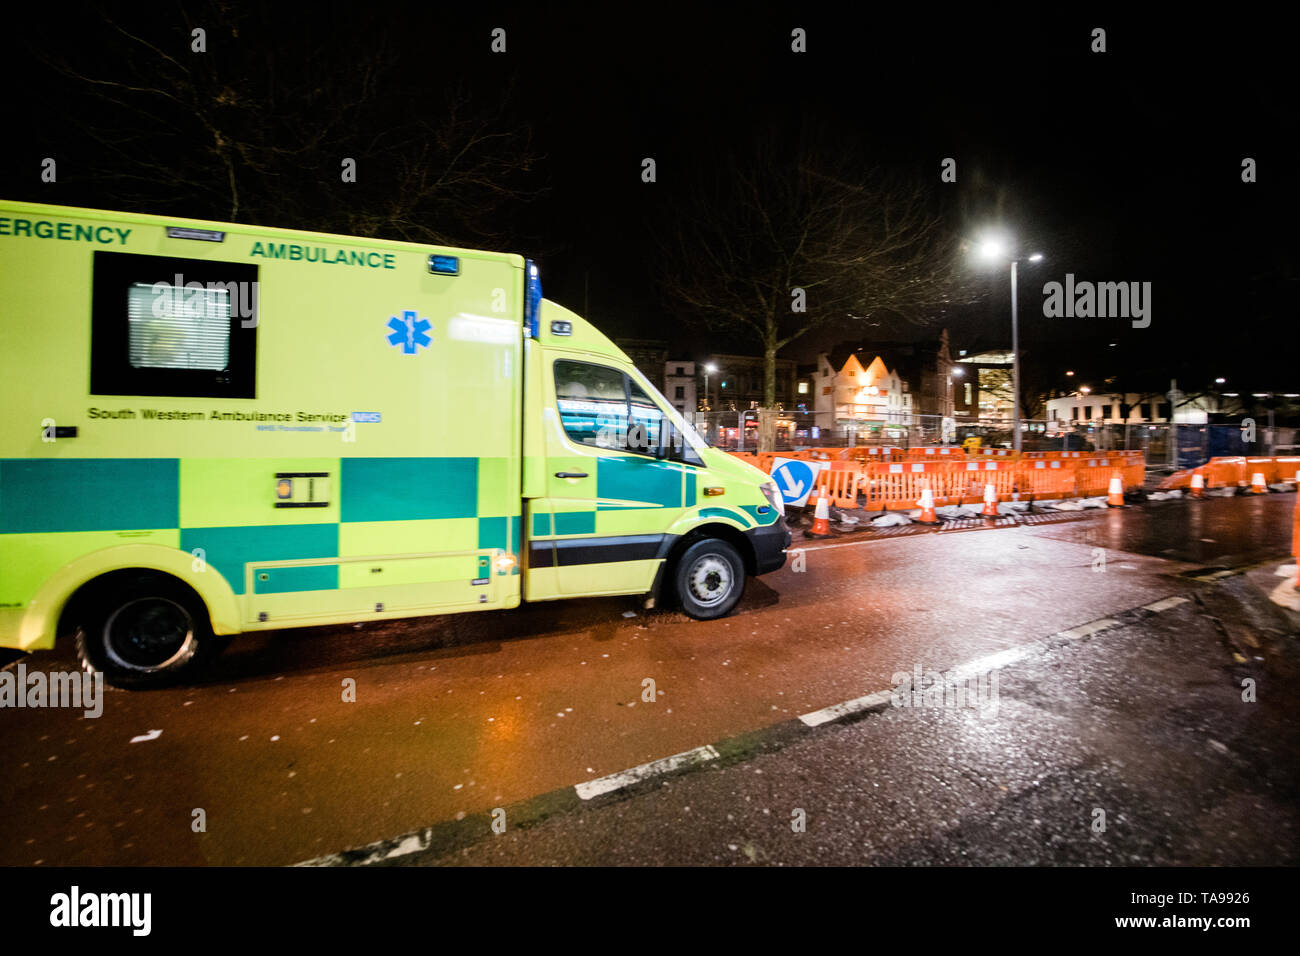 London, United Kingdom - Mar 5, 2017: Yellow NHS ambulance driving fast on the repaired with roadworks street in central london at night  - Stock Image